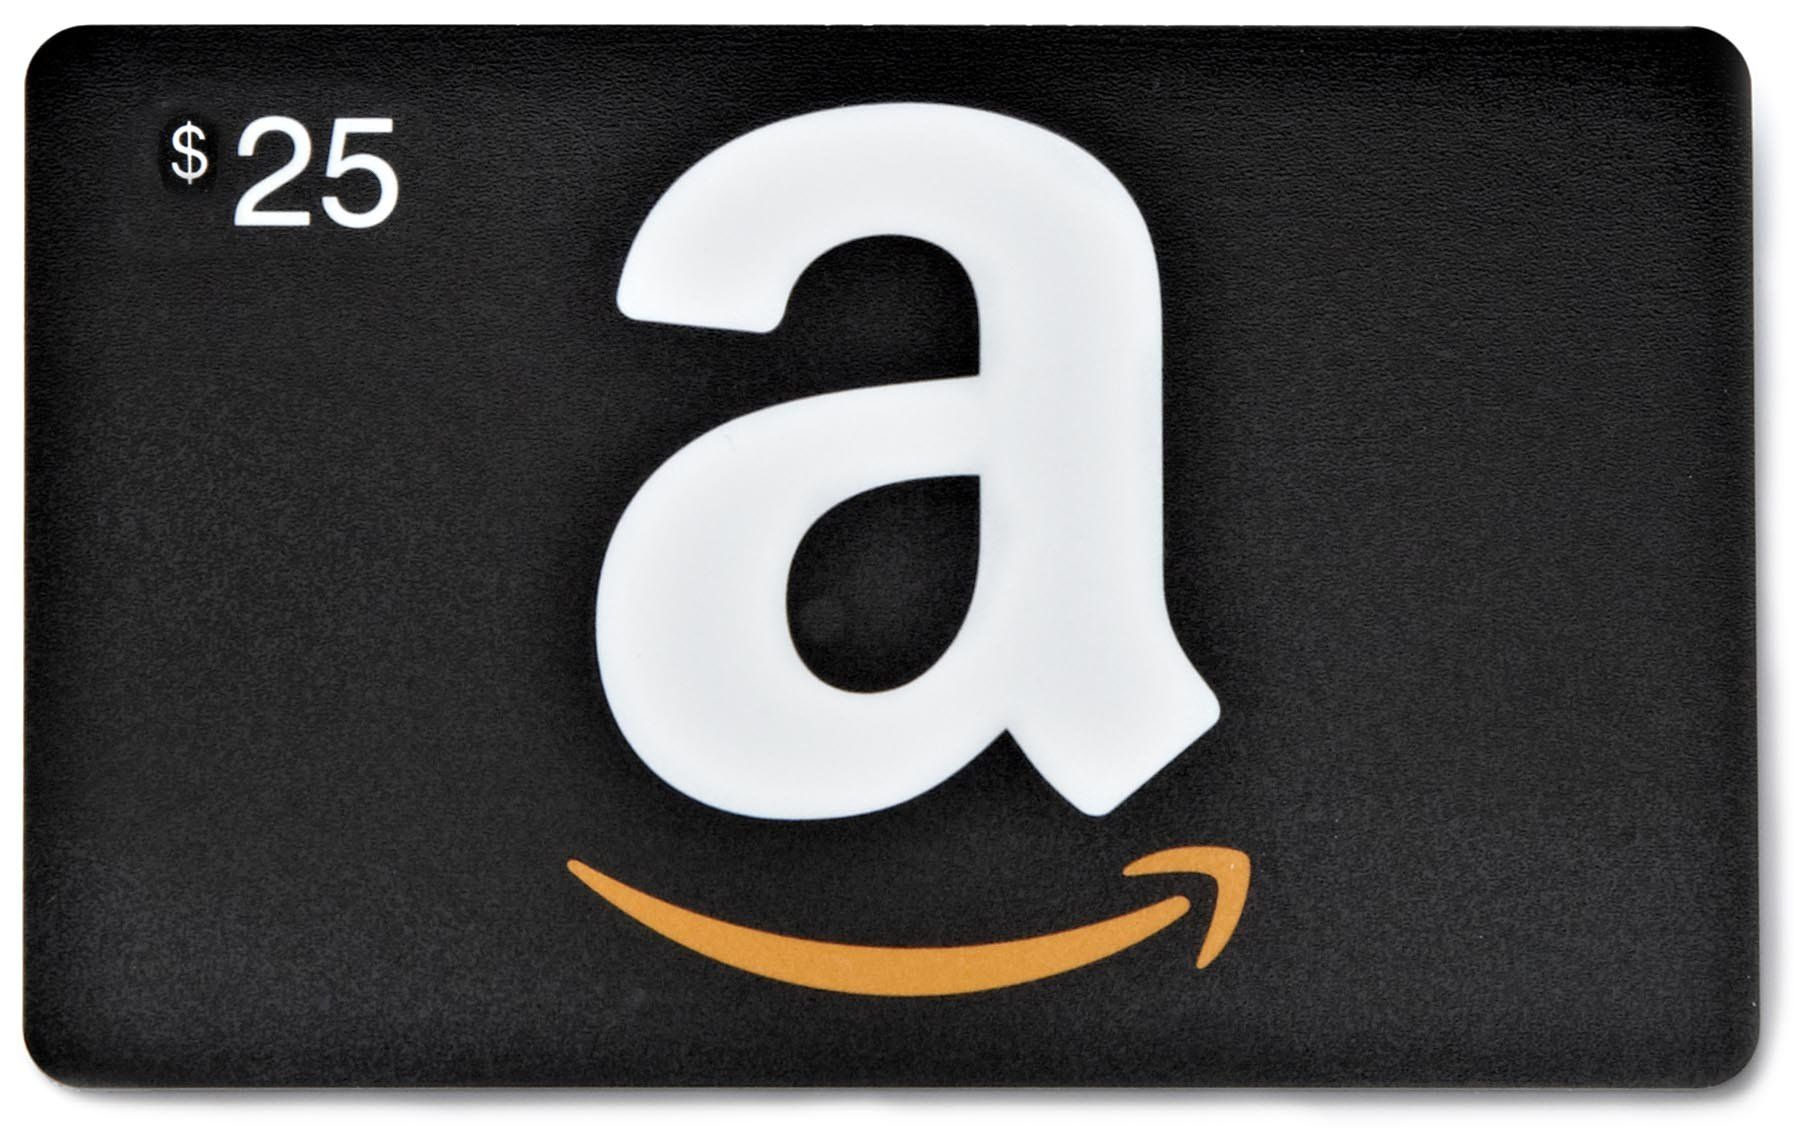 25 gift cards pack of 20 classic black card